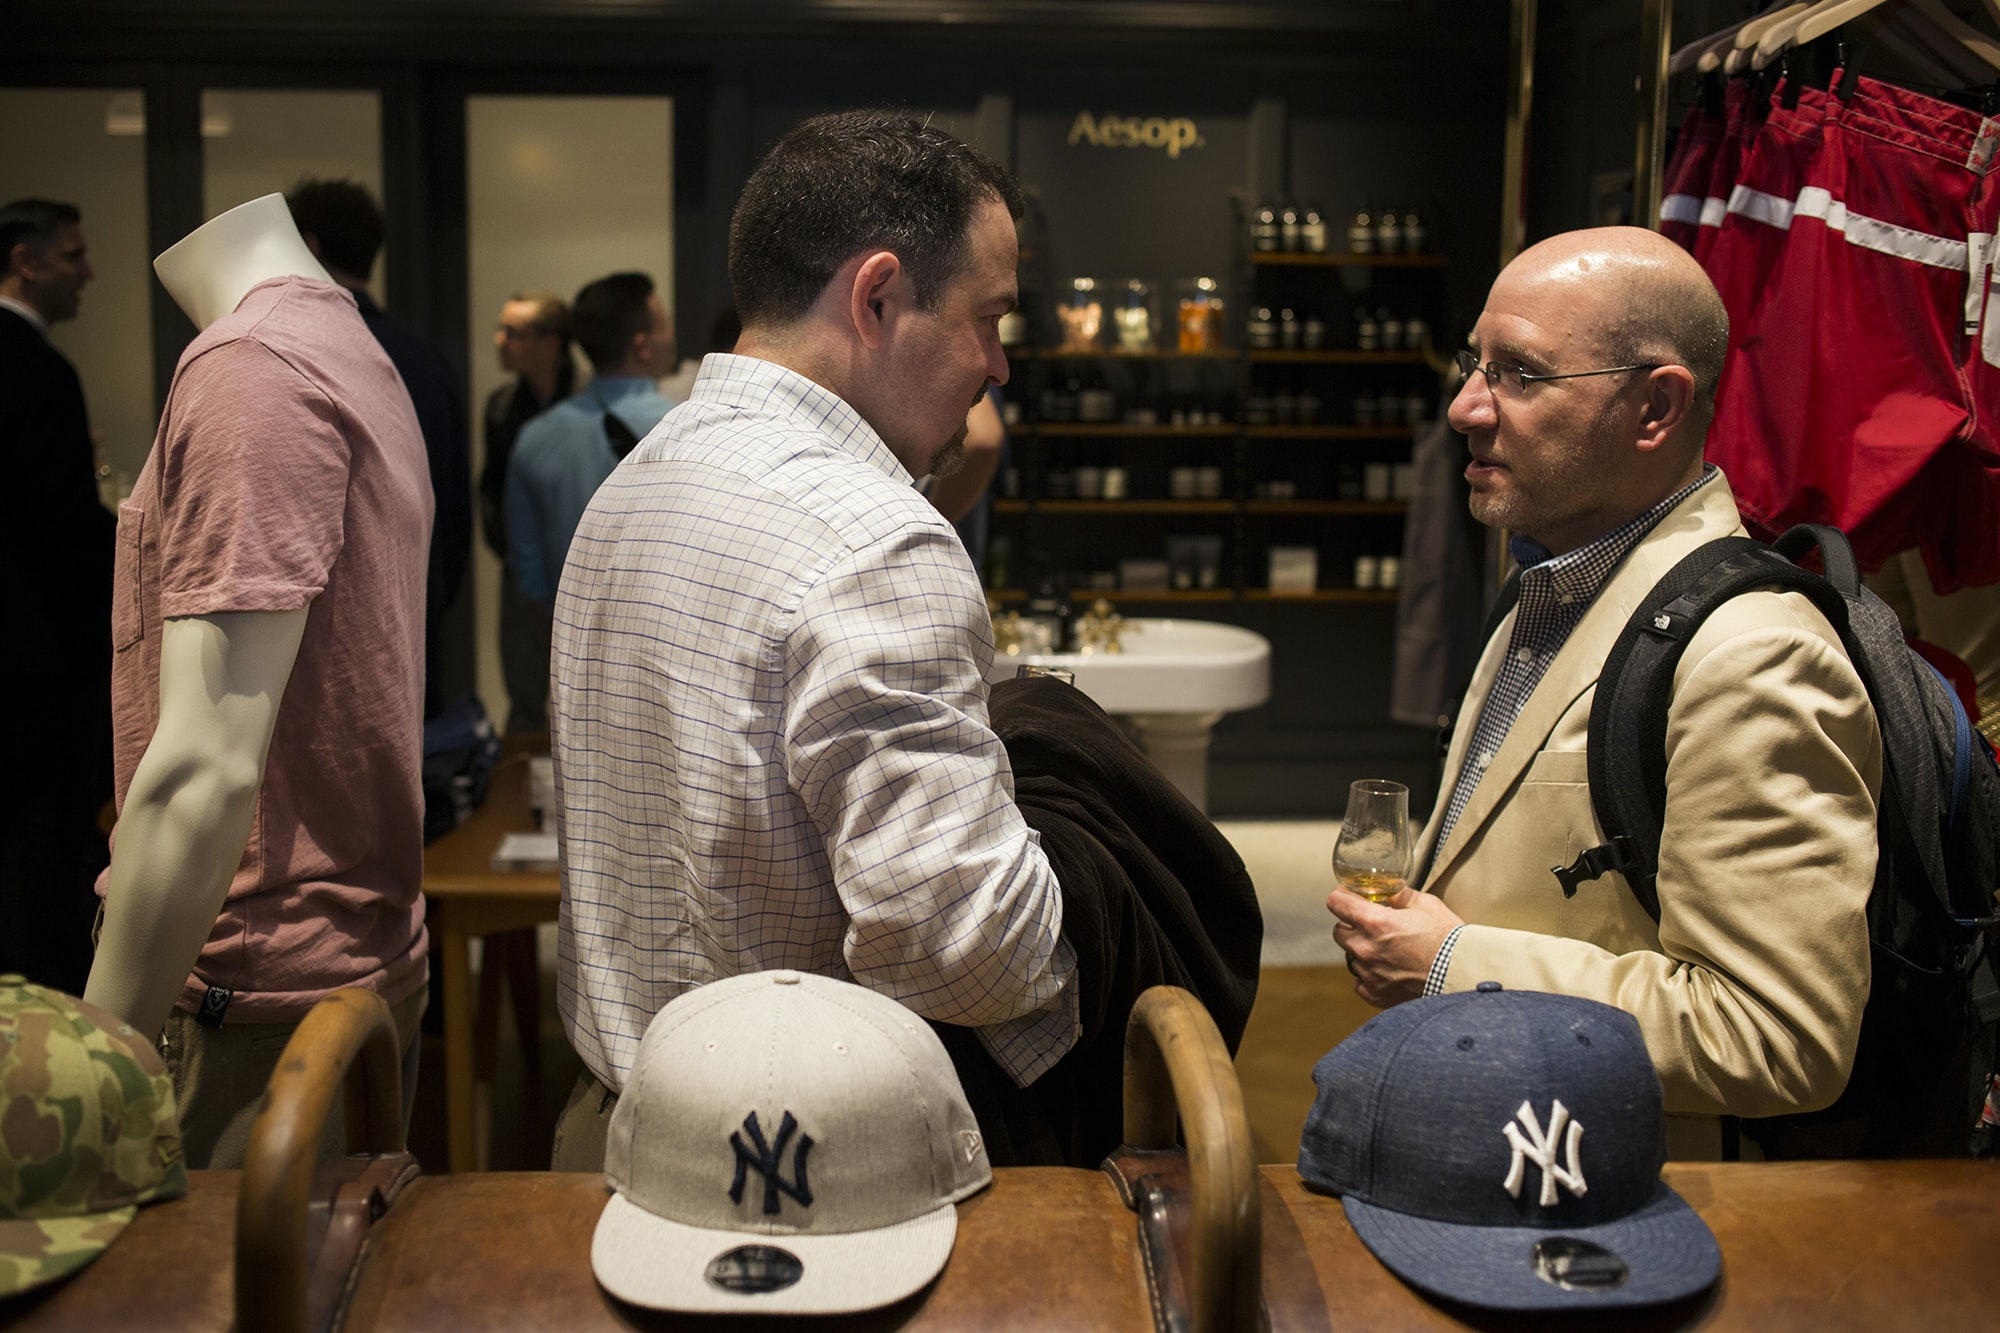 Photo Report: The HODINKEE Summer Kick-Off Party At Todd Snyder In New York City Photo Report: The HODINKEE Summer Kick-Off Party At Todd Snyder In New York City  20011135 copy